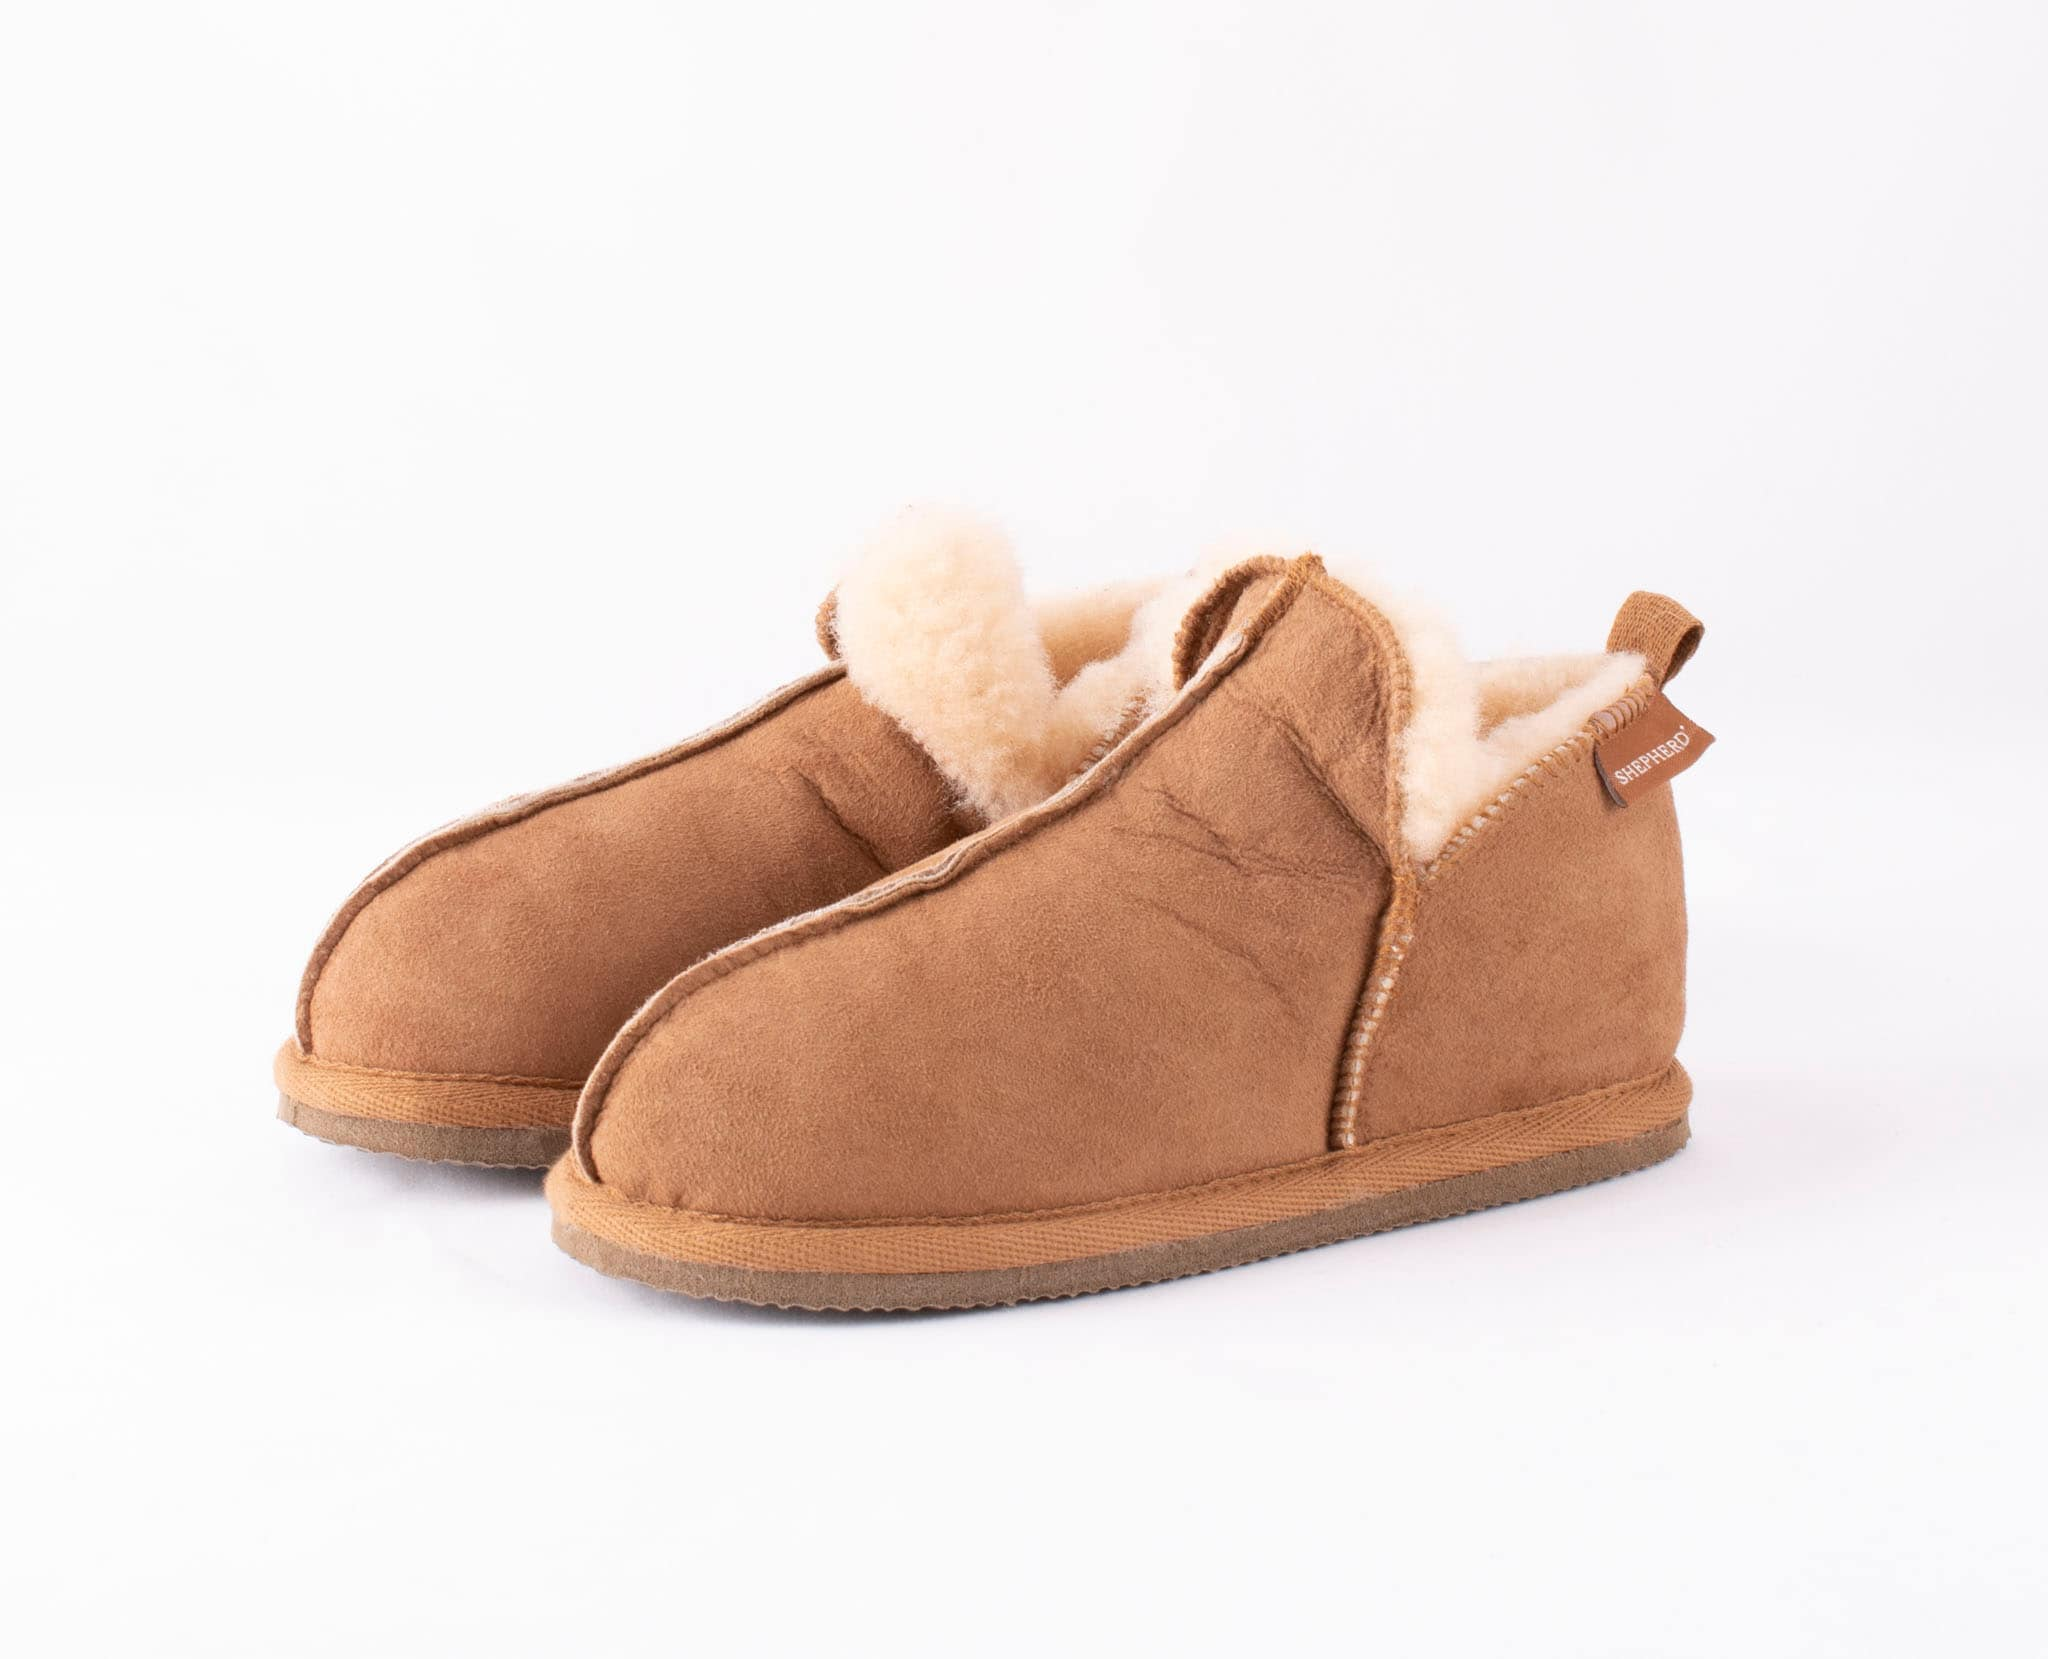 Marsielle, sheepskin slippers Camel